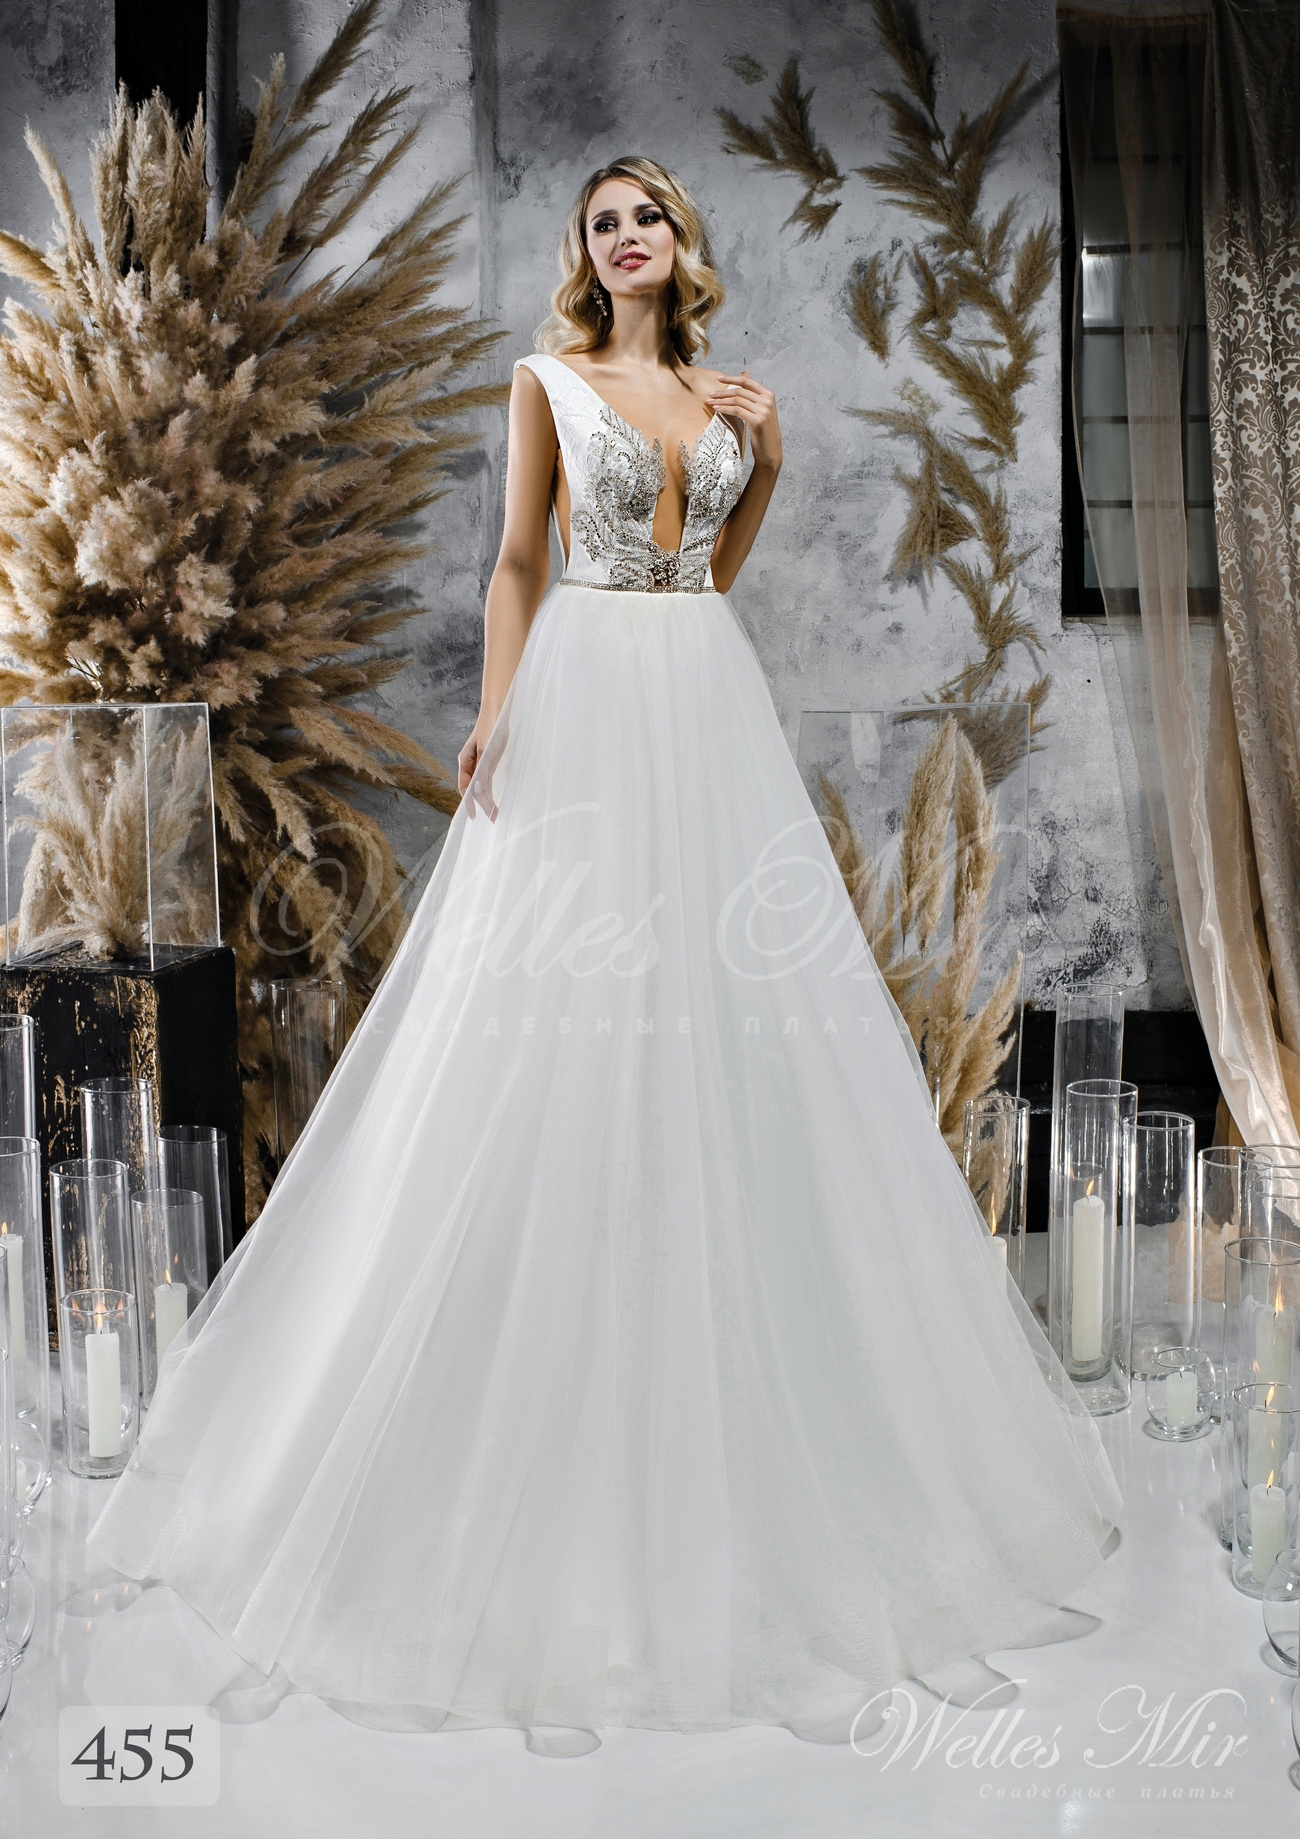 Wedding dress with a lush skirt and split corset wholesale from WellesMir 455